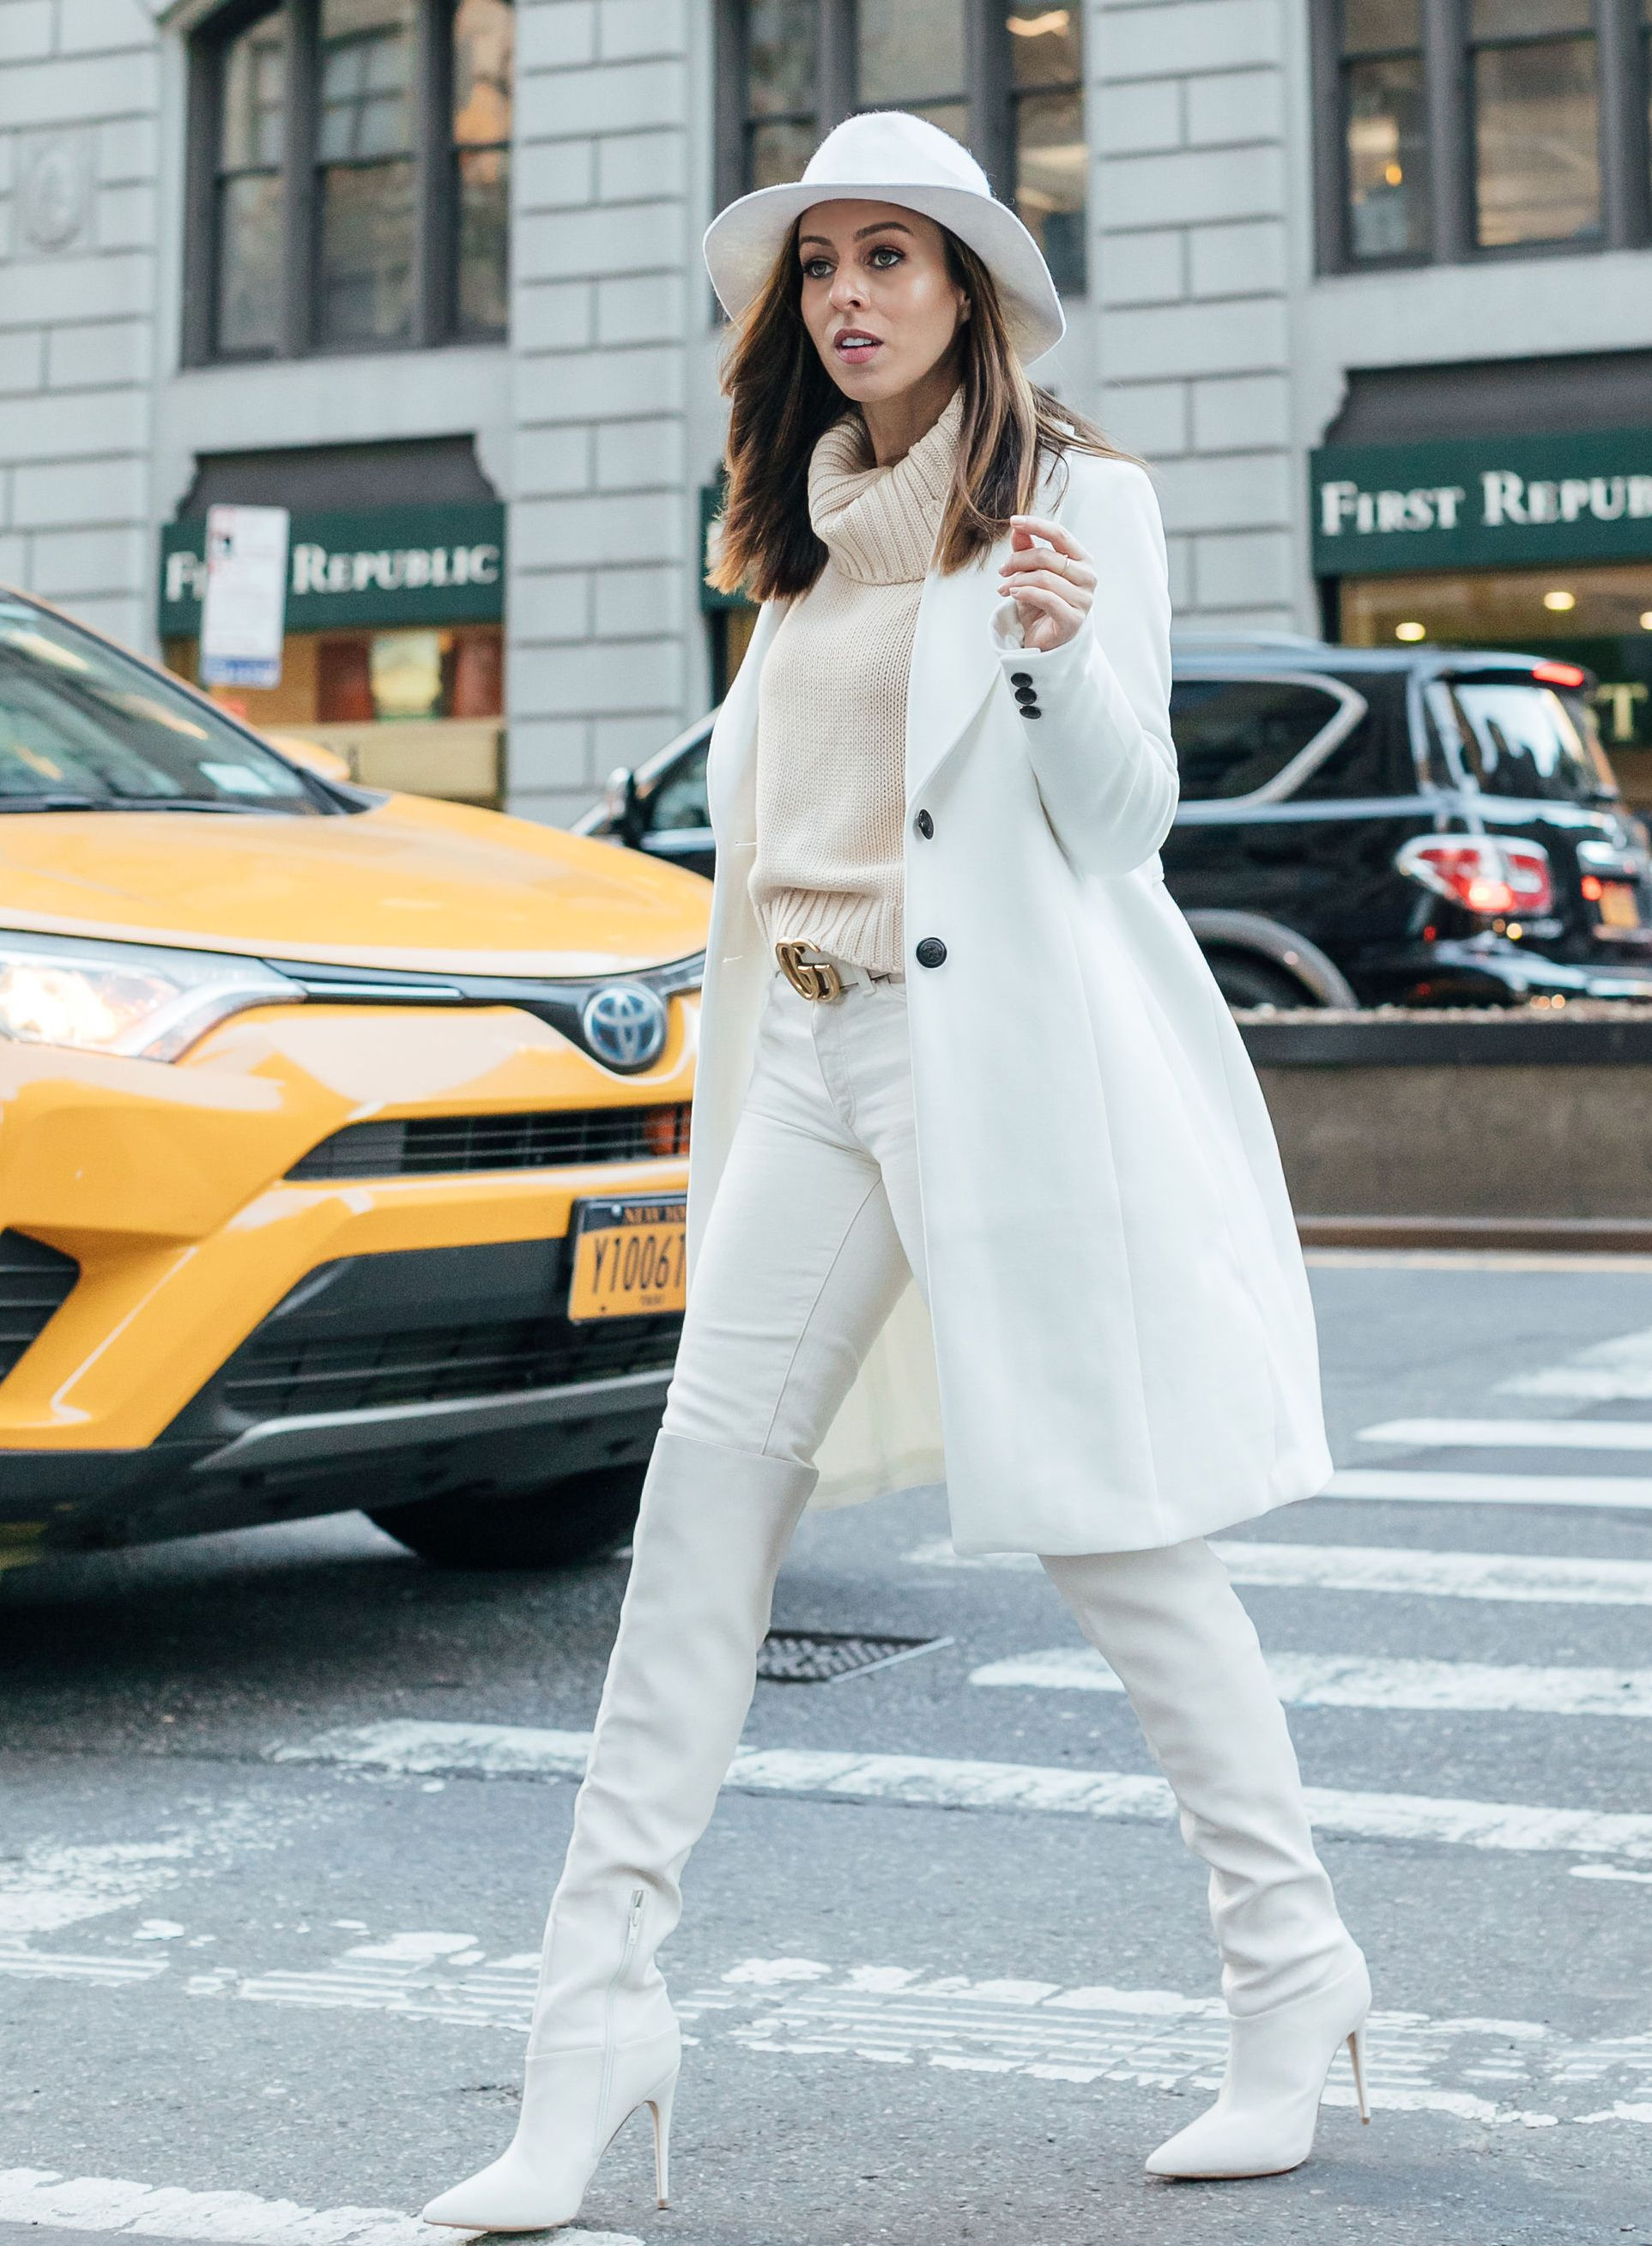 60ab44805c01 Sydne Style shows how to wear winter white in over the knee boots and jeans  #coats #white #boots #overthekneeboots #guccibelt @sydnesummer